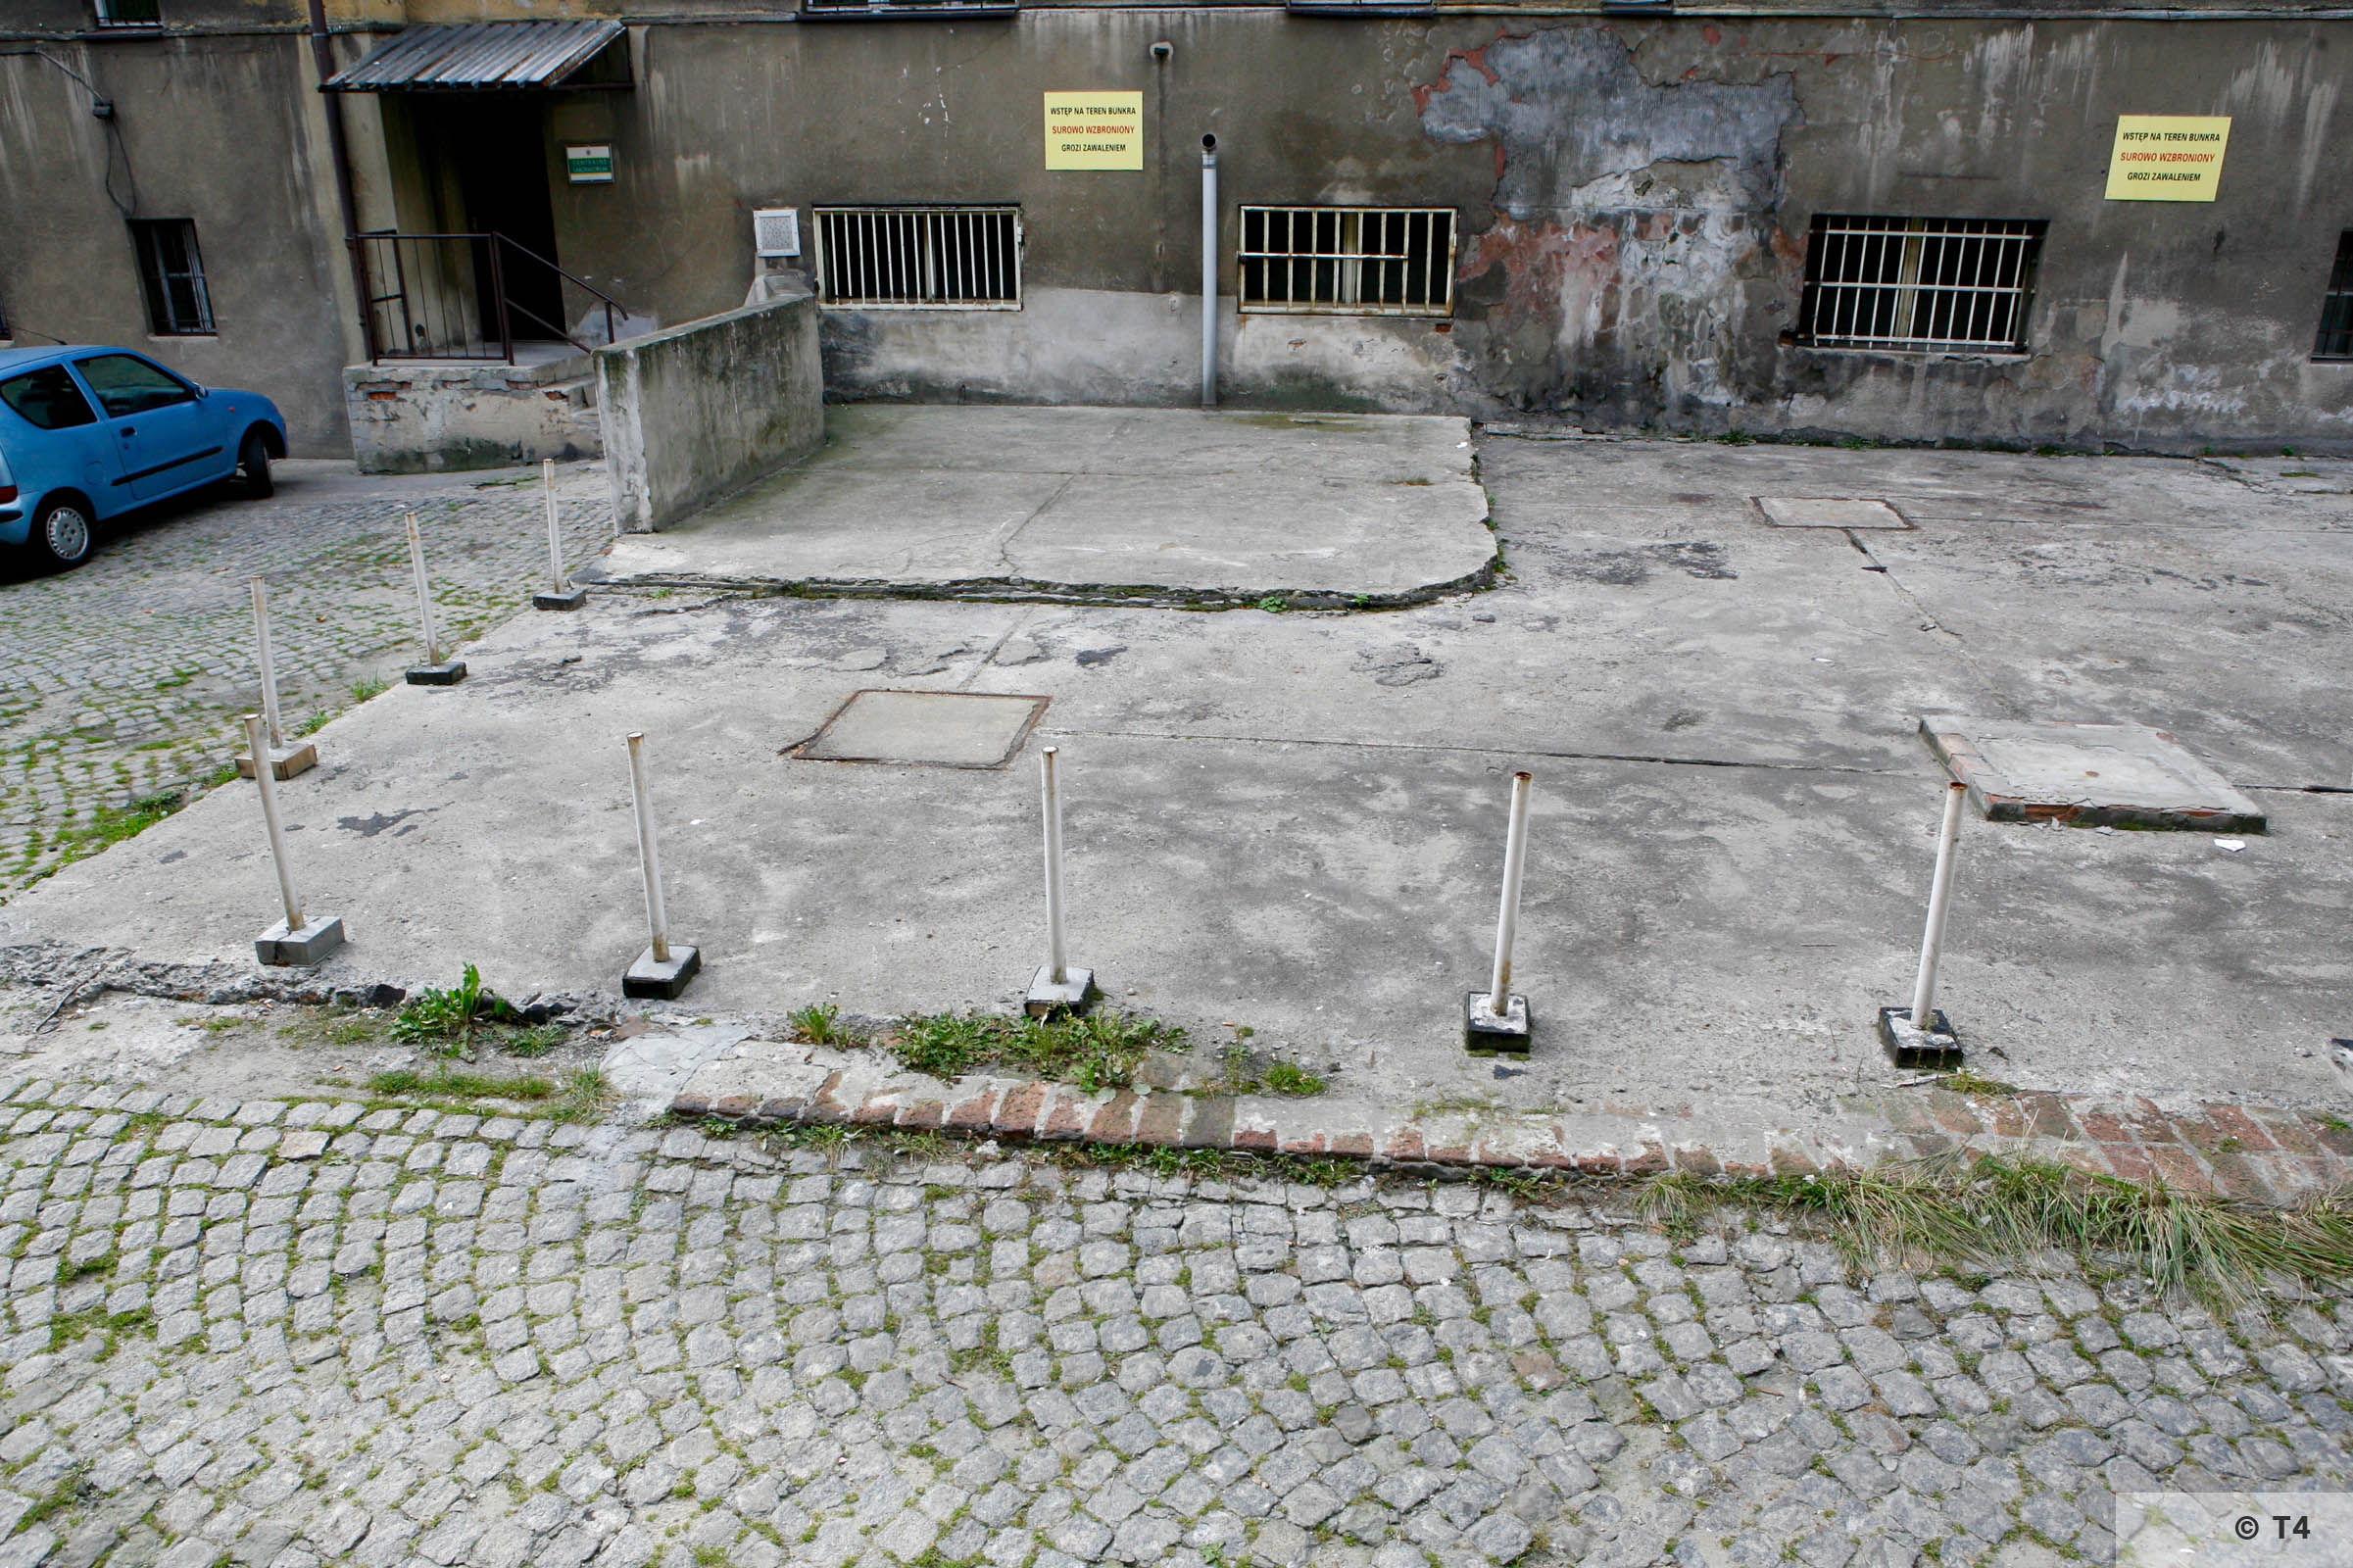 Building of the former Gestapo Headquarters in Katowice. Area of air raid bunker. 2006 T4 3740